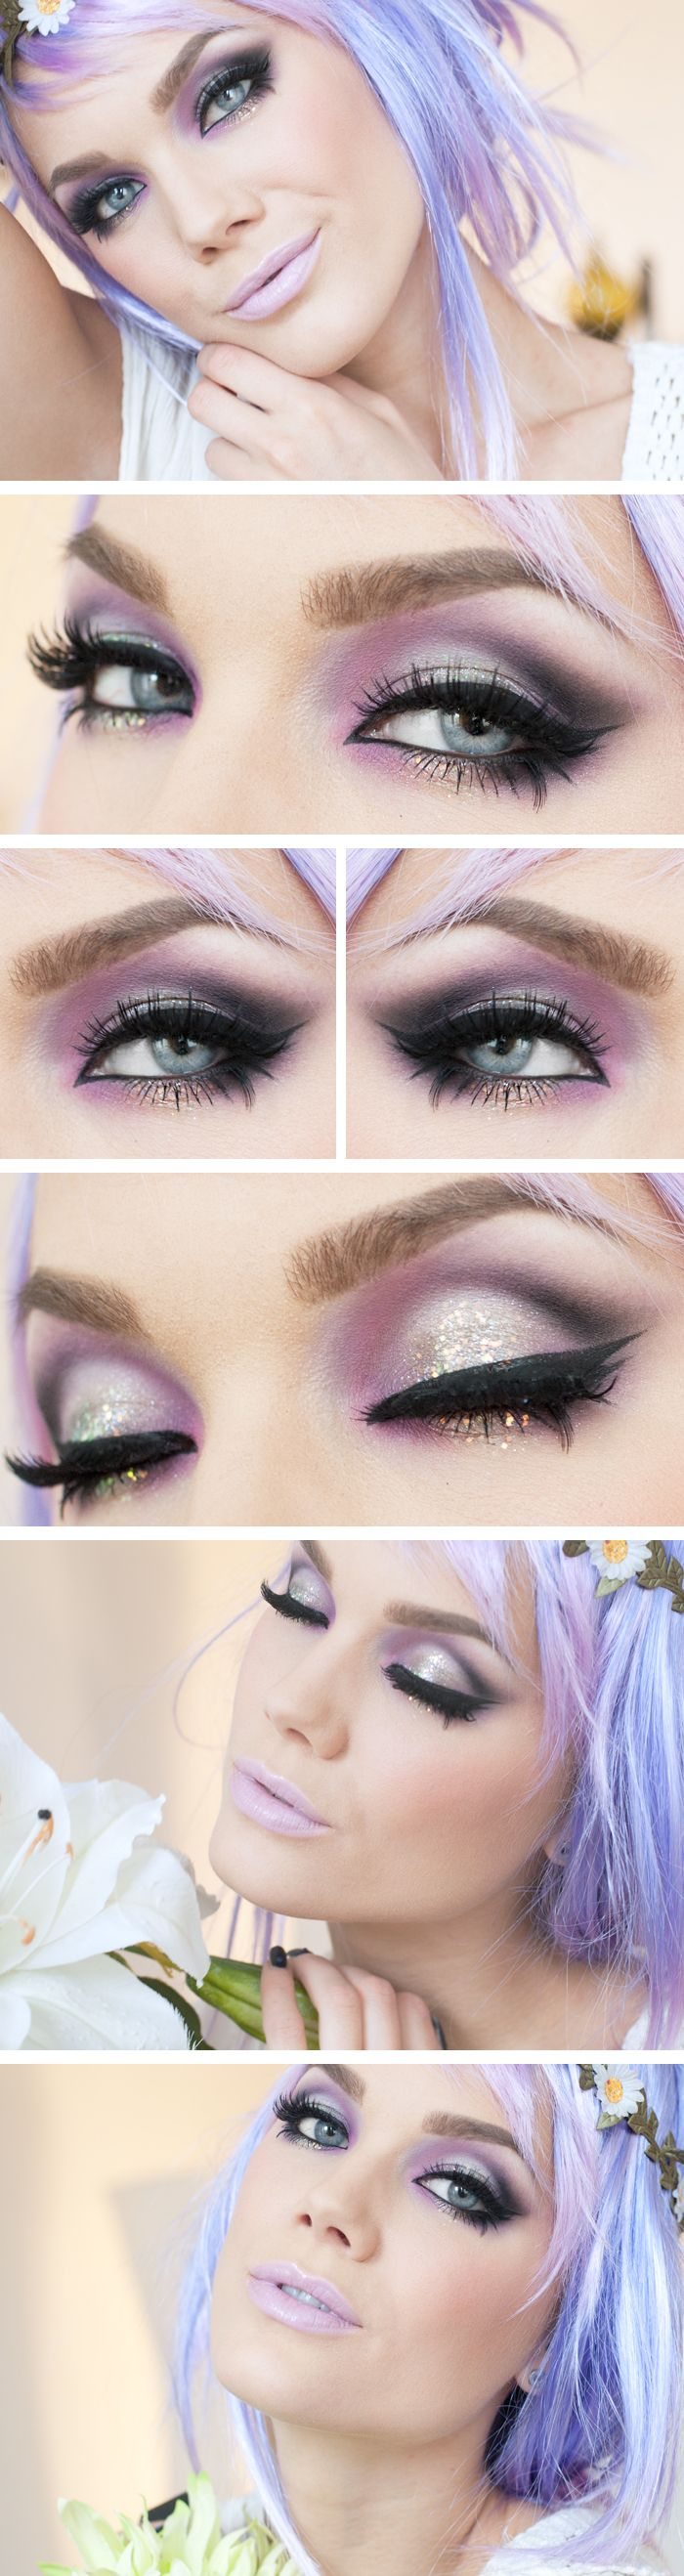 """Today's Look : """"Nothing's changed at all"""" -Linda Hallberg (this has fairy written all over it! light lavender, purples, with a soft smokey wing, glitter,) 04/22/13"""